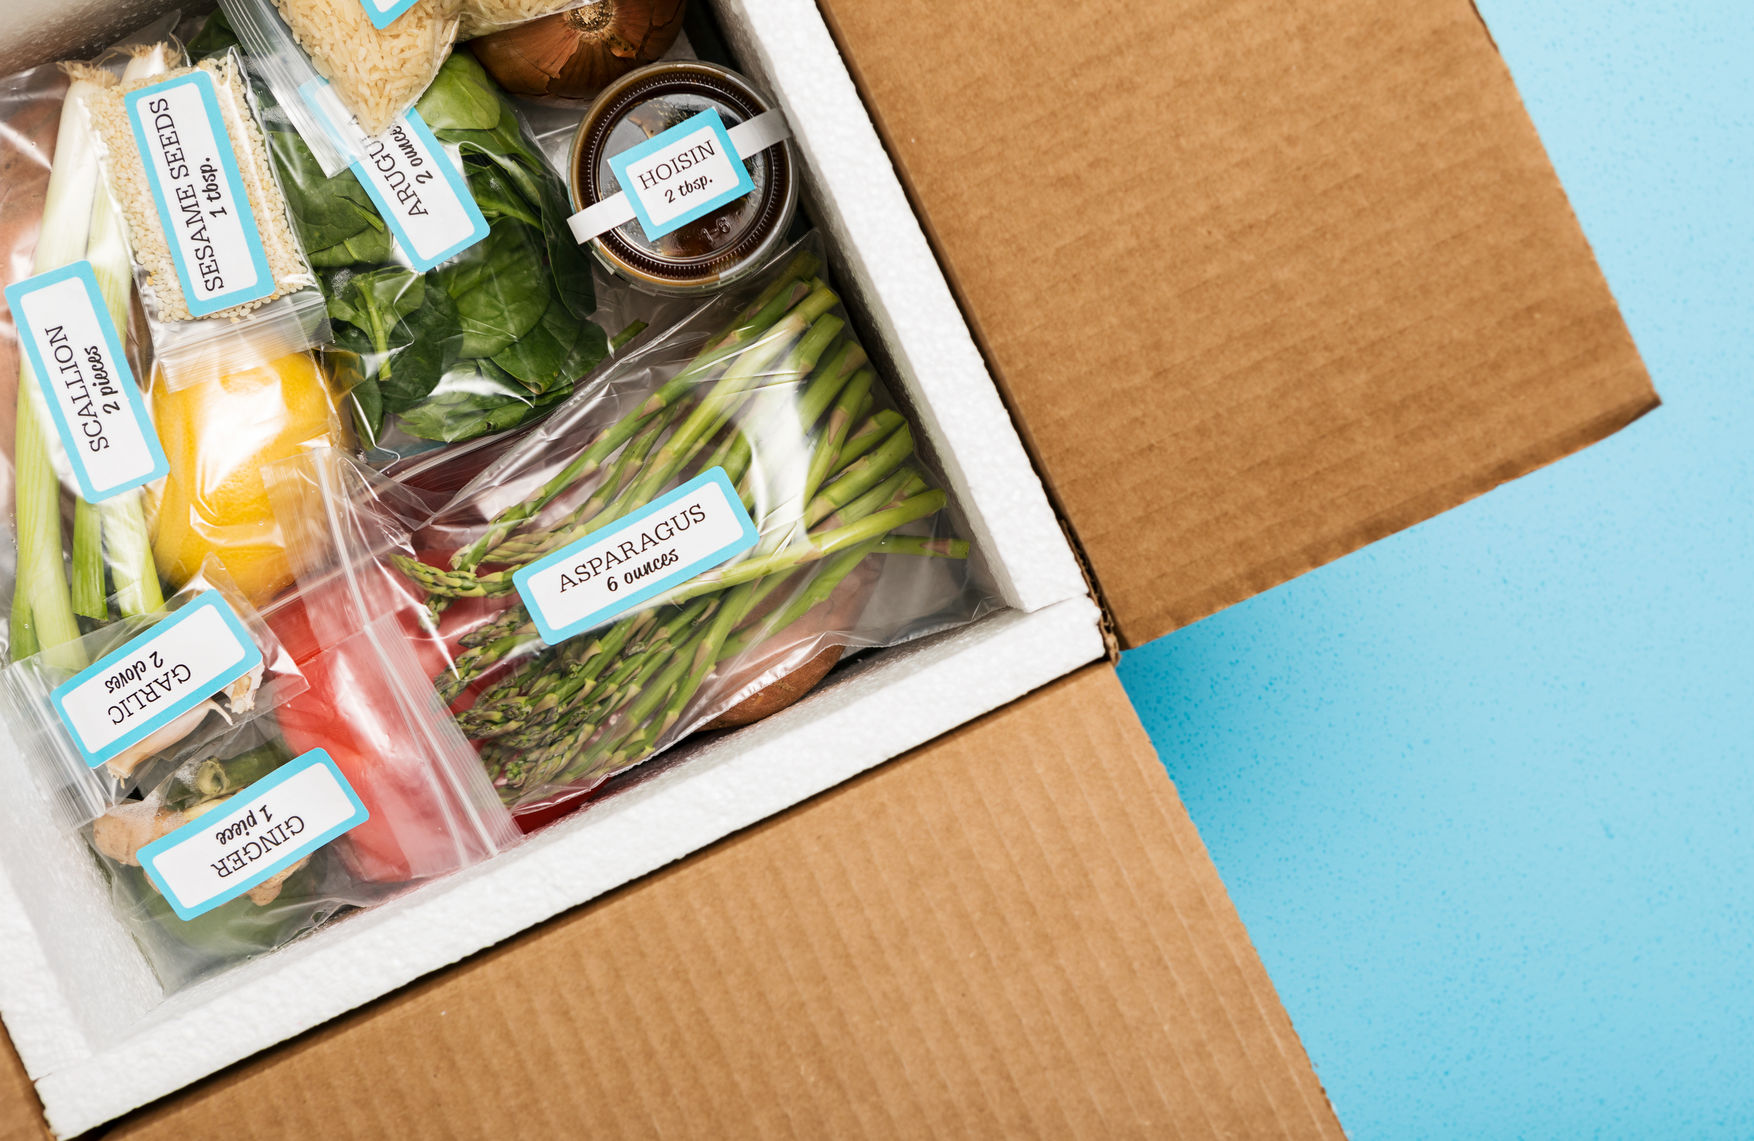 Meal Kits Might Actually Have a Smaller Carbon Footprint Than Grocery Shopping